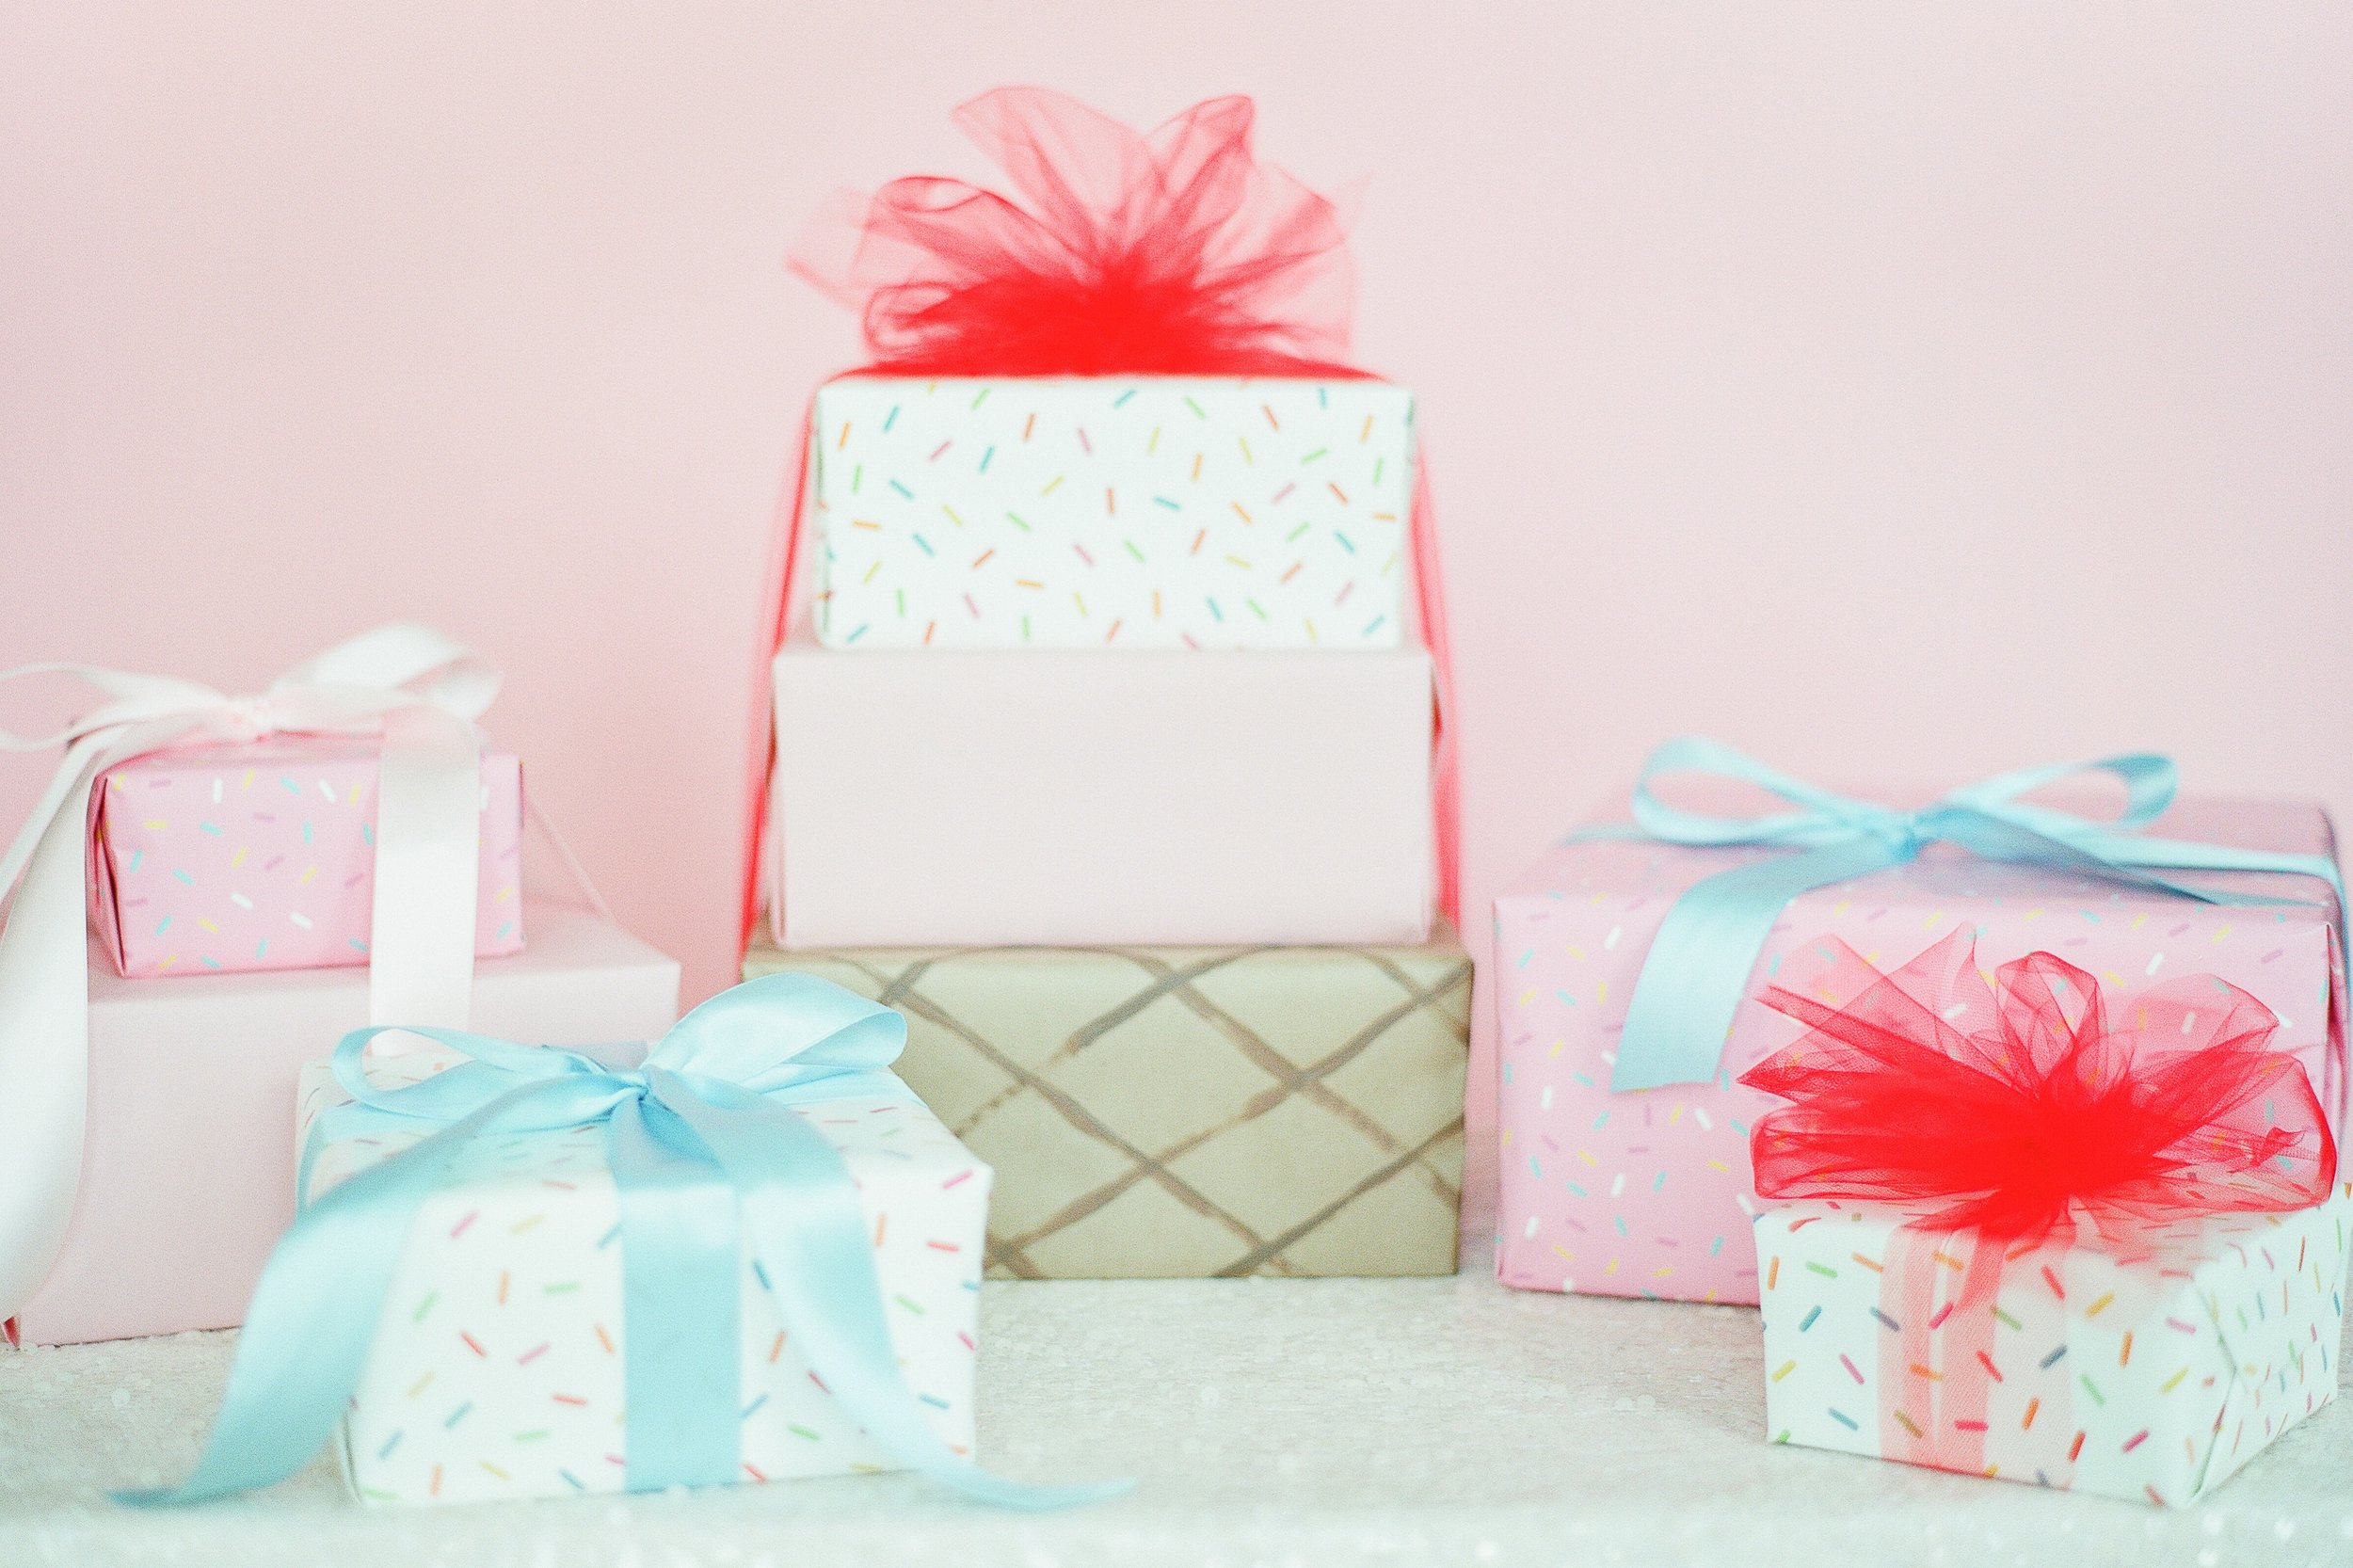 wedding wire - A Guest's Guide to Engagement Party Gift Etiquette